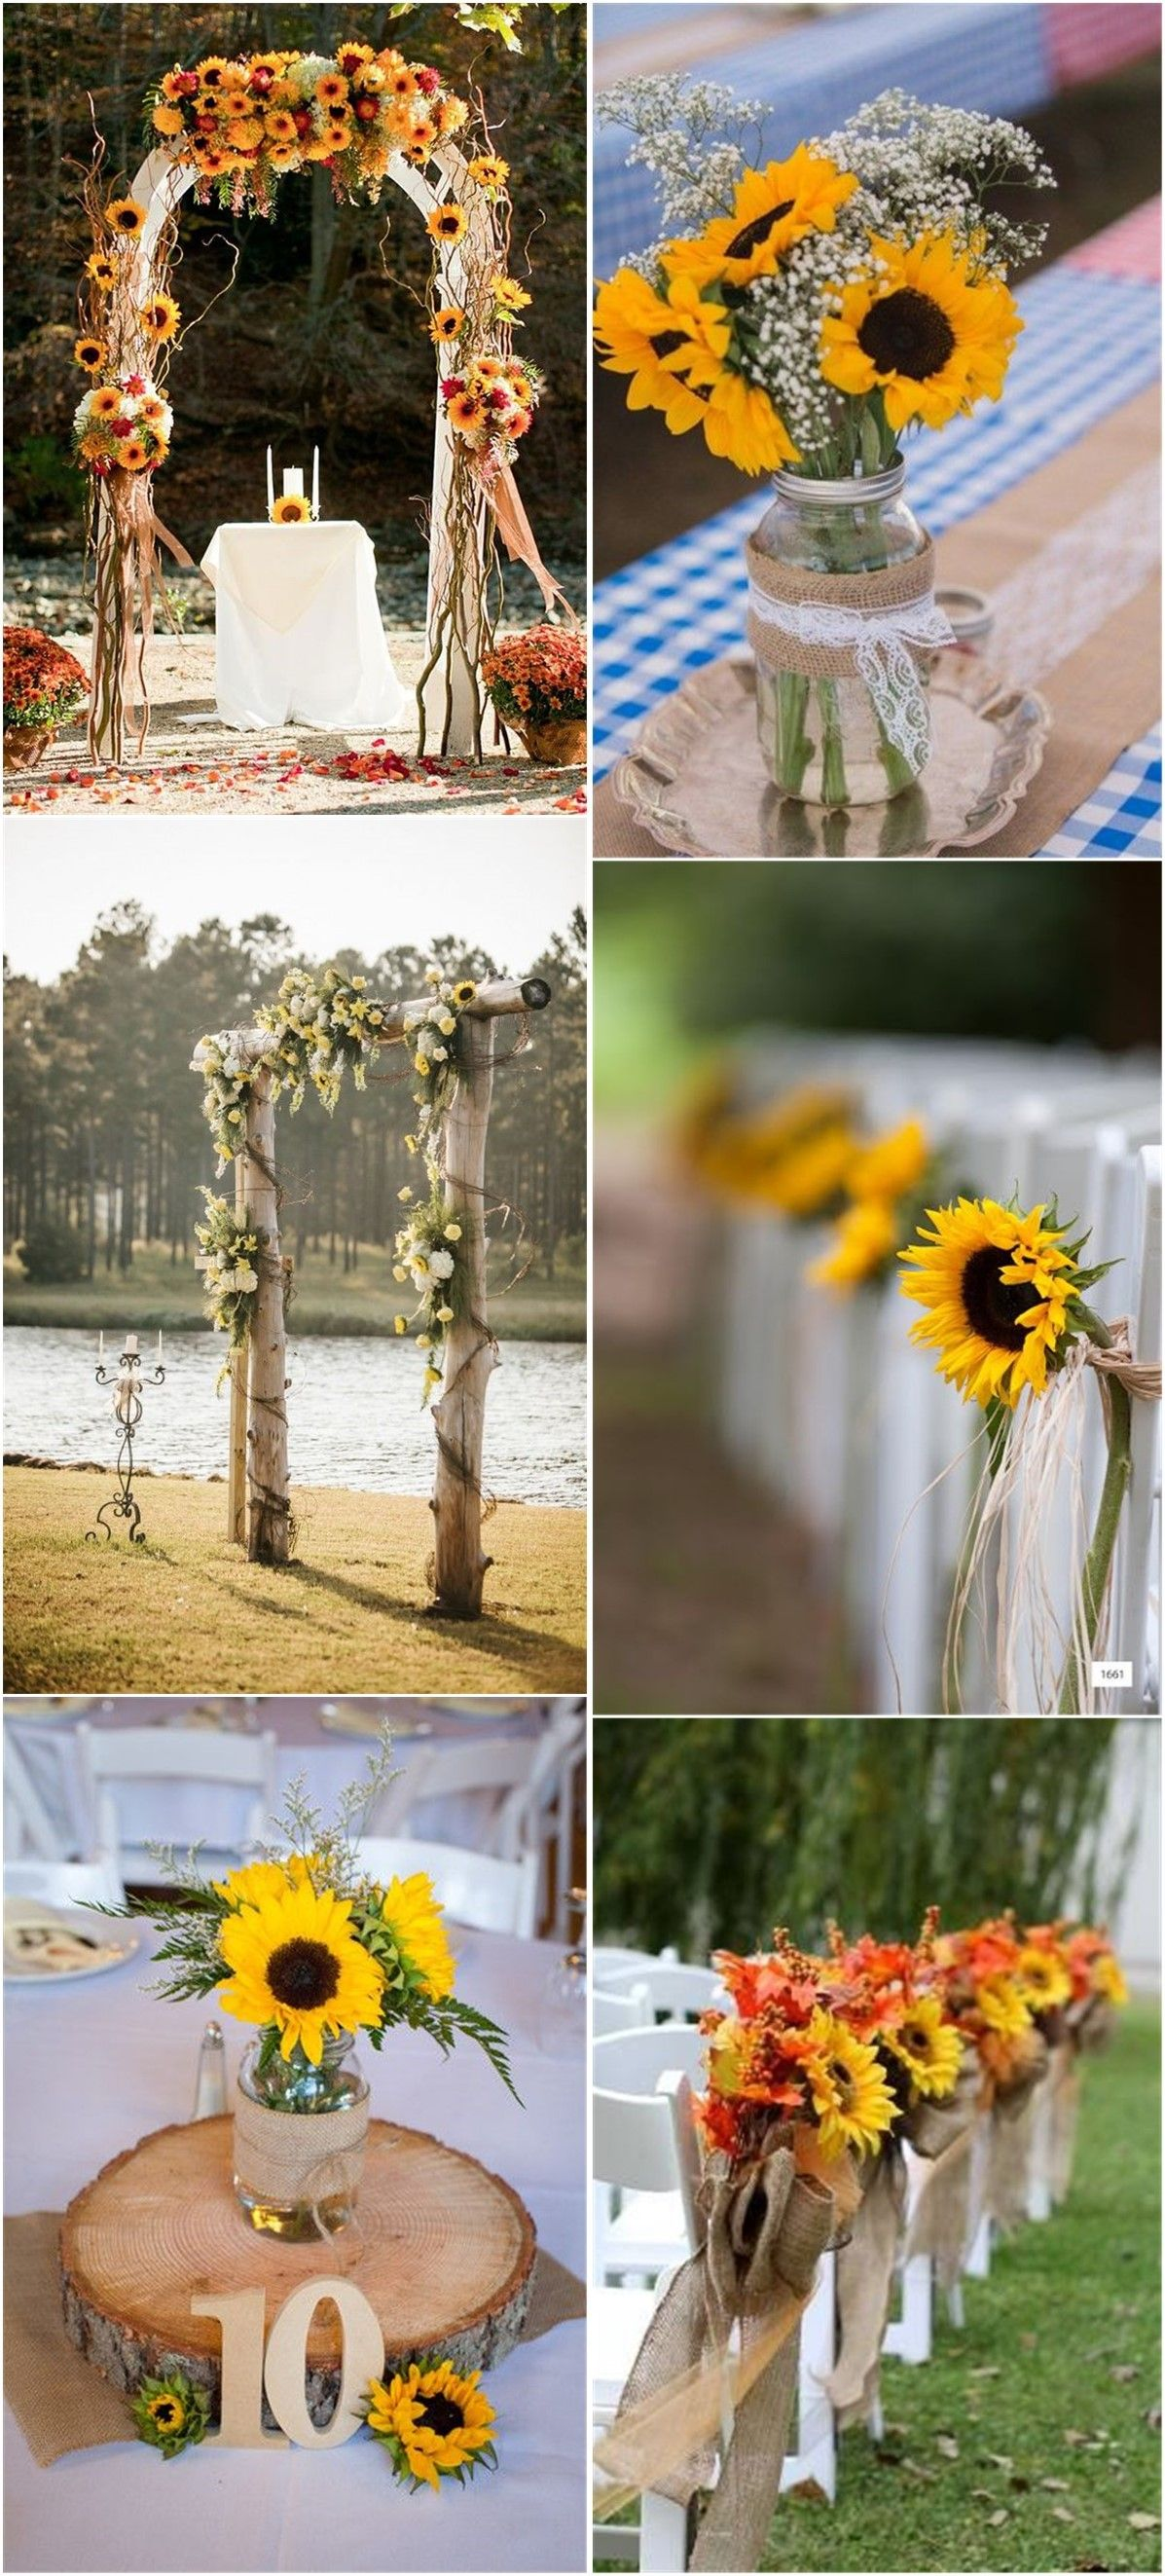 Bright Sunflower Wedding Decoration Ideas For Your Rustic Wedding